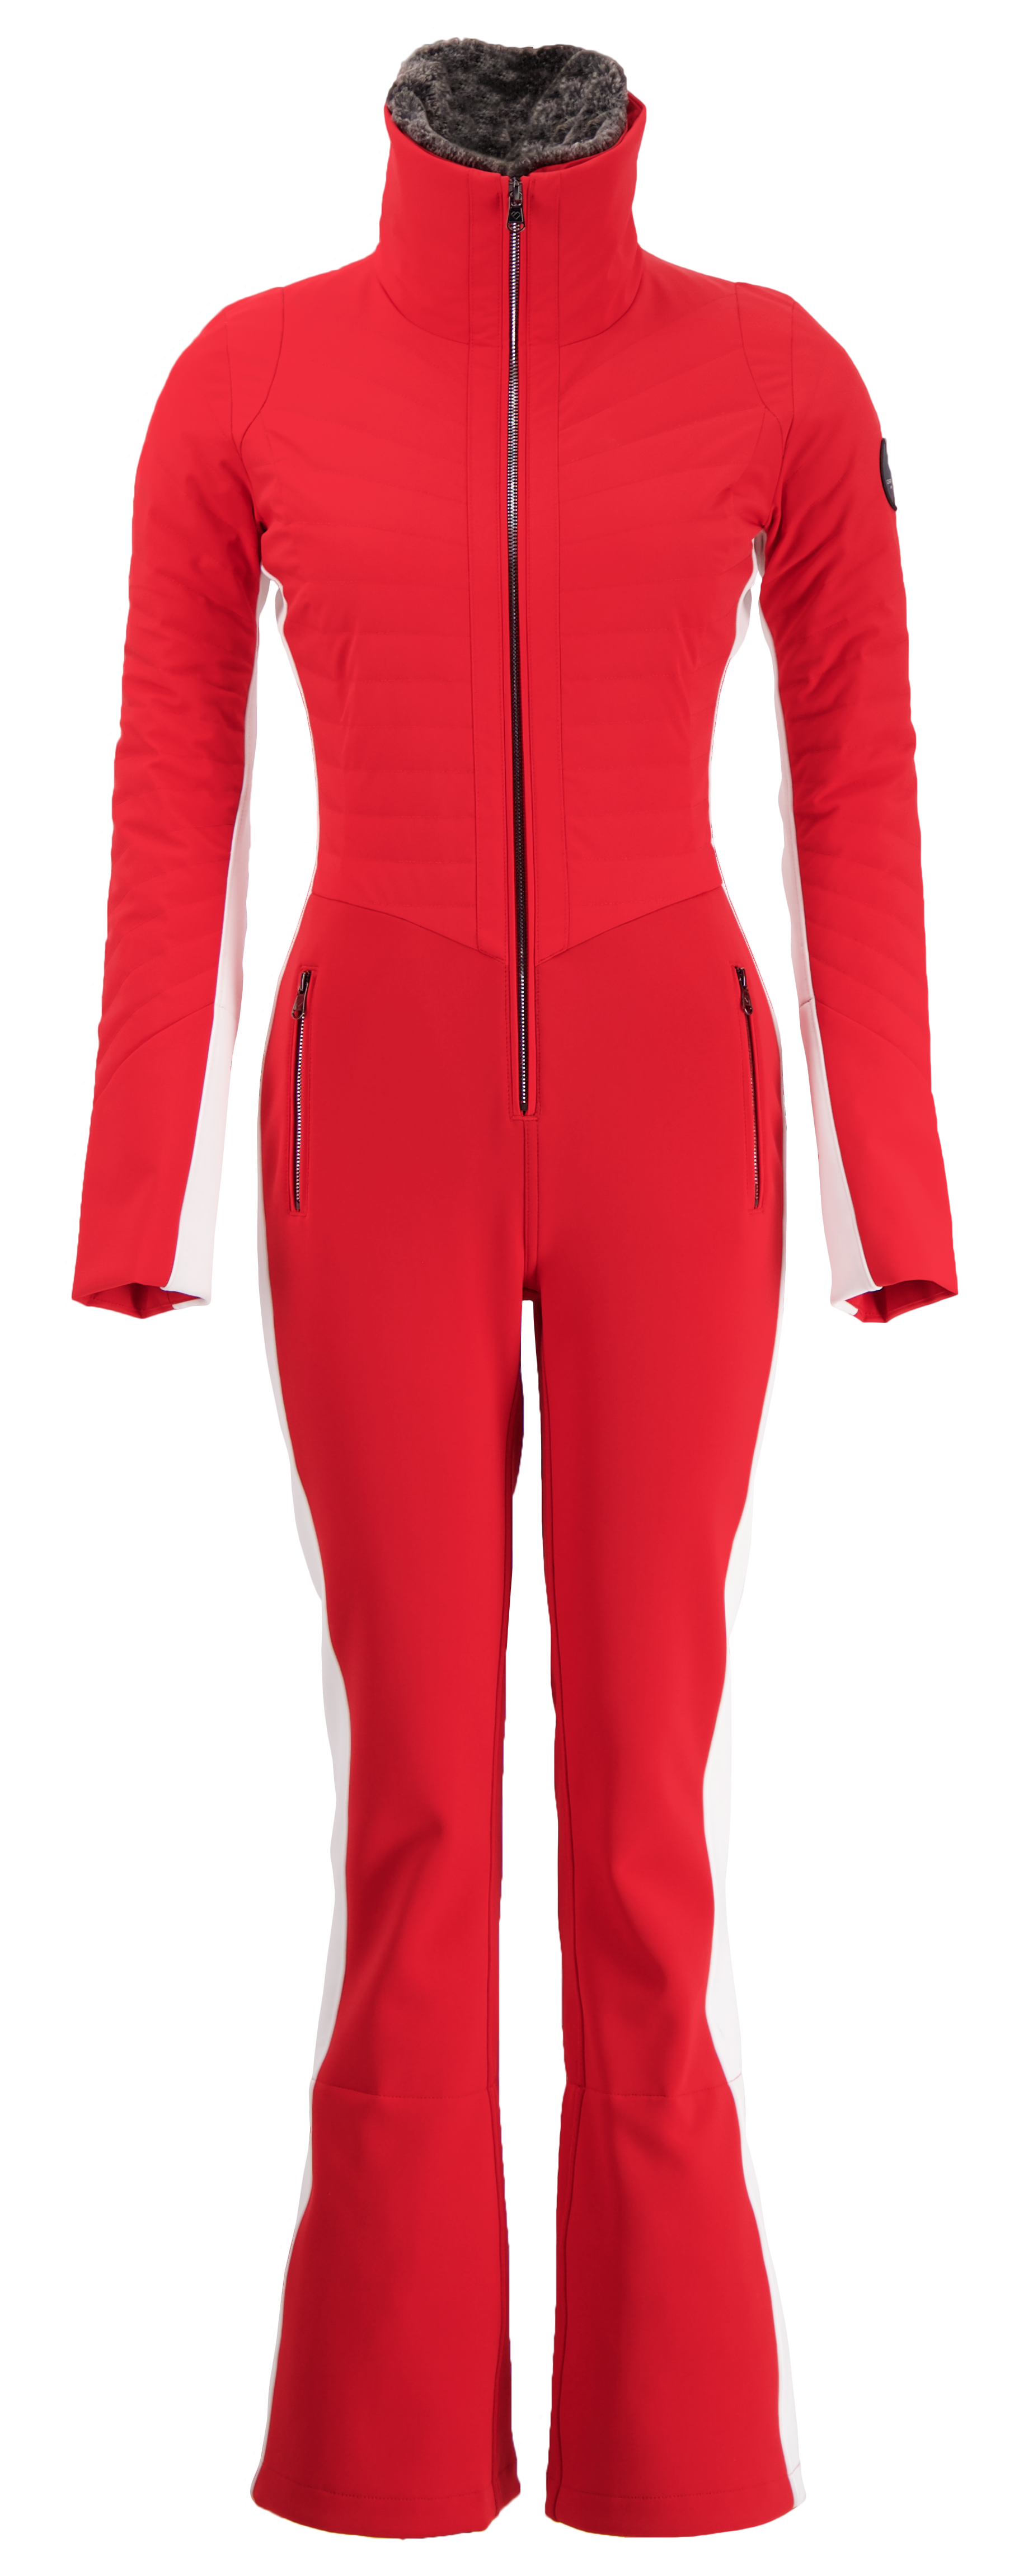 The 2021 Gear of the Year and Best in Test Stöckli Nela 80 Women's Frontside Ski thumb